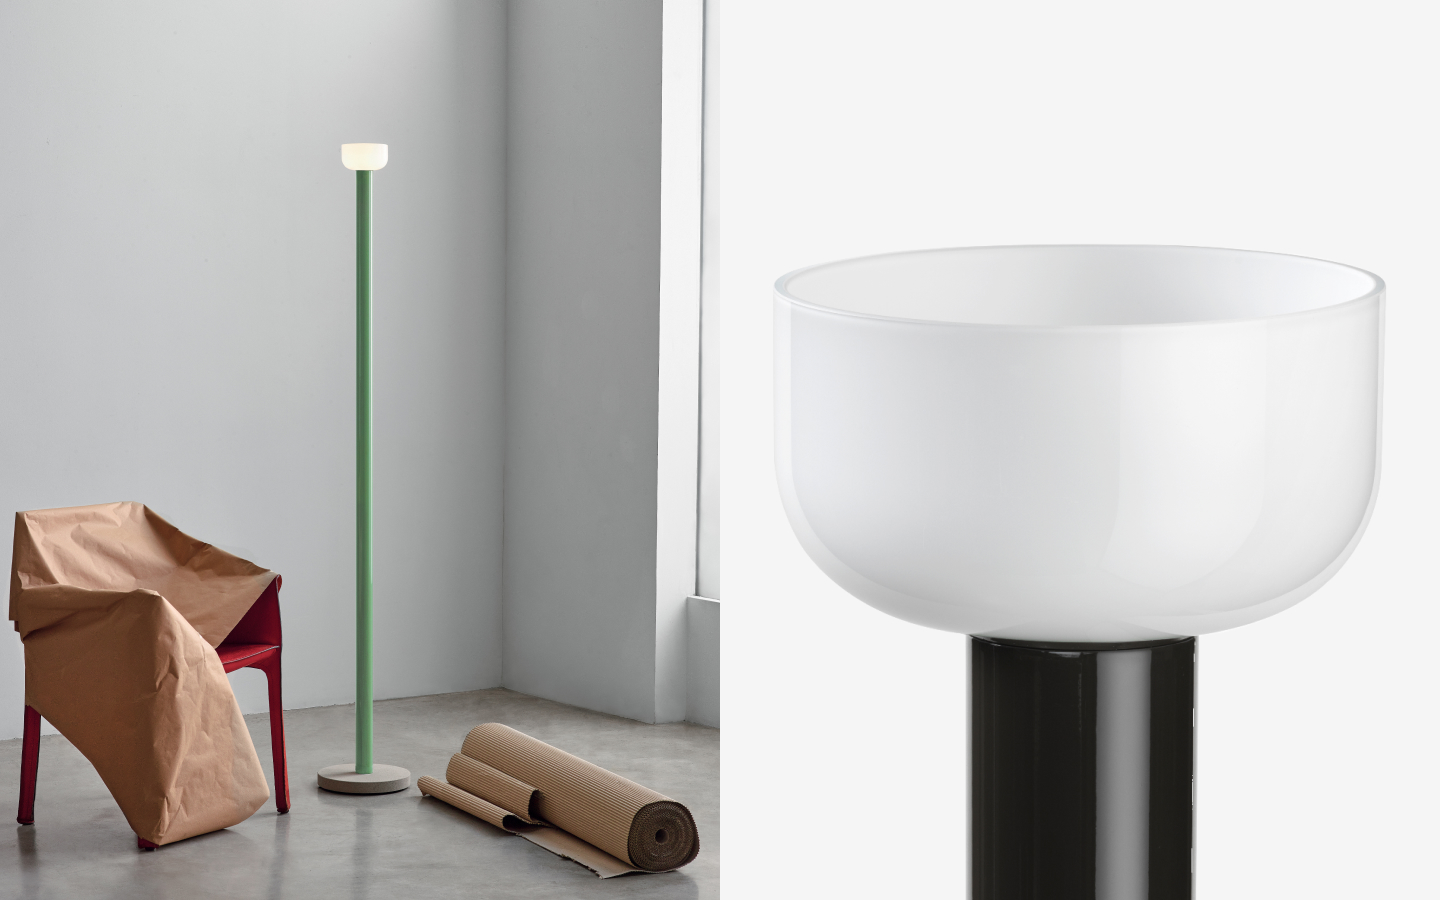 tall green floor light with bowl-shaped shade